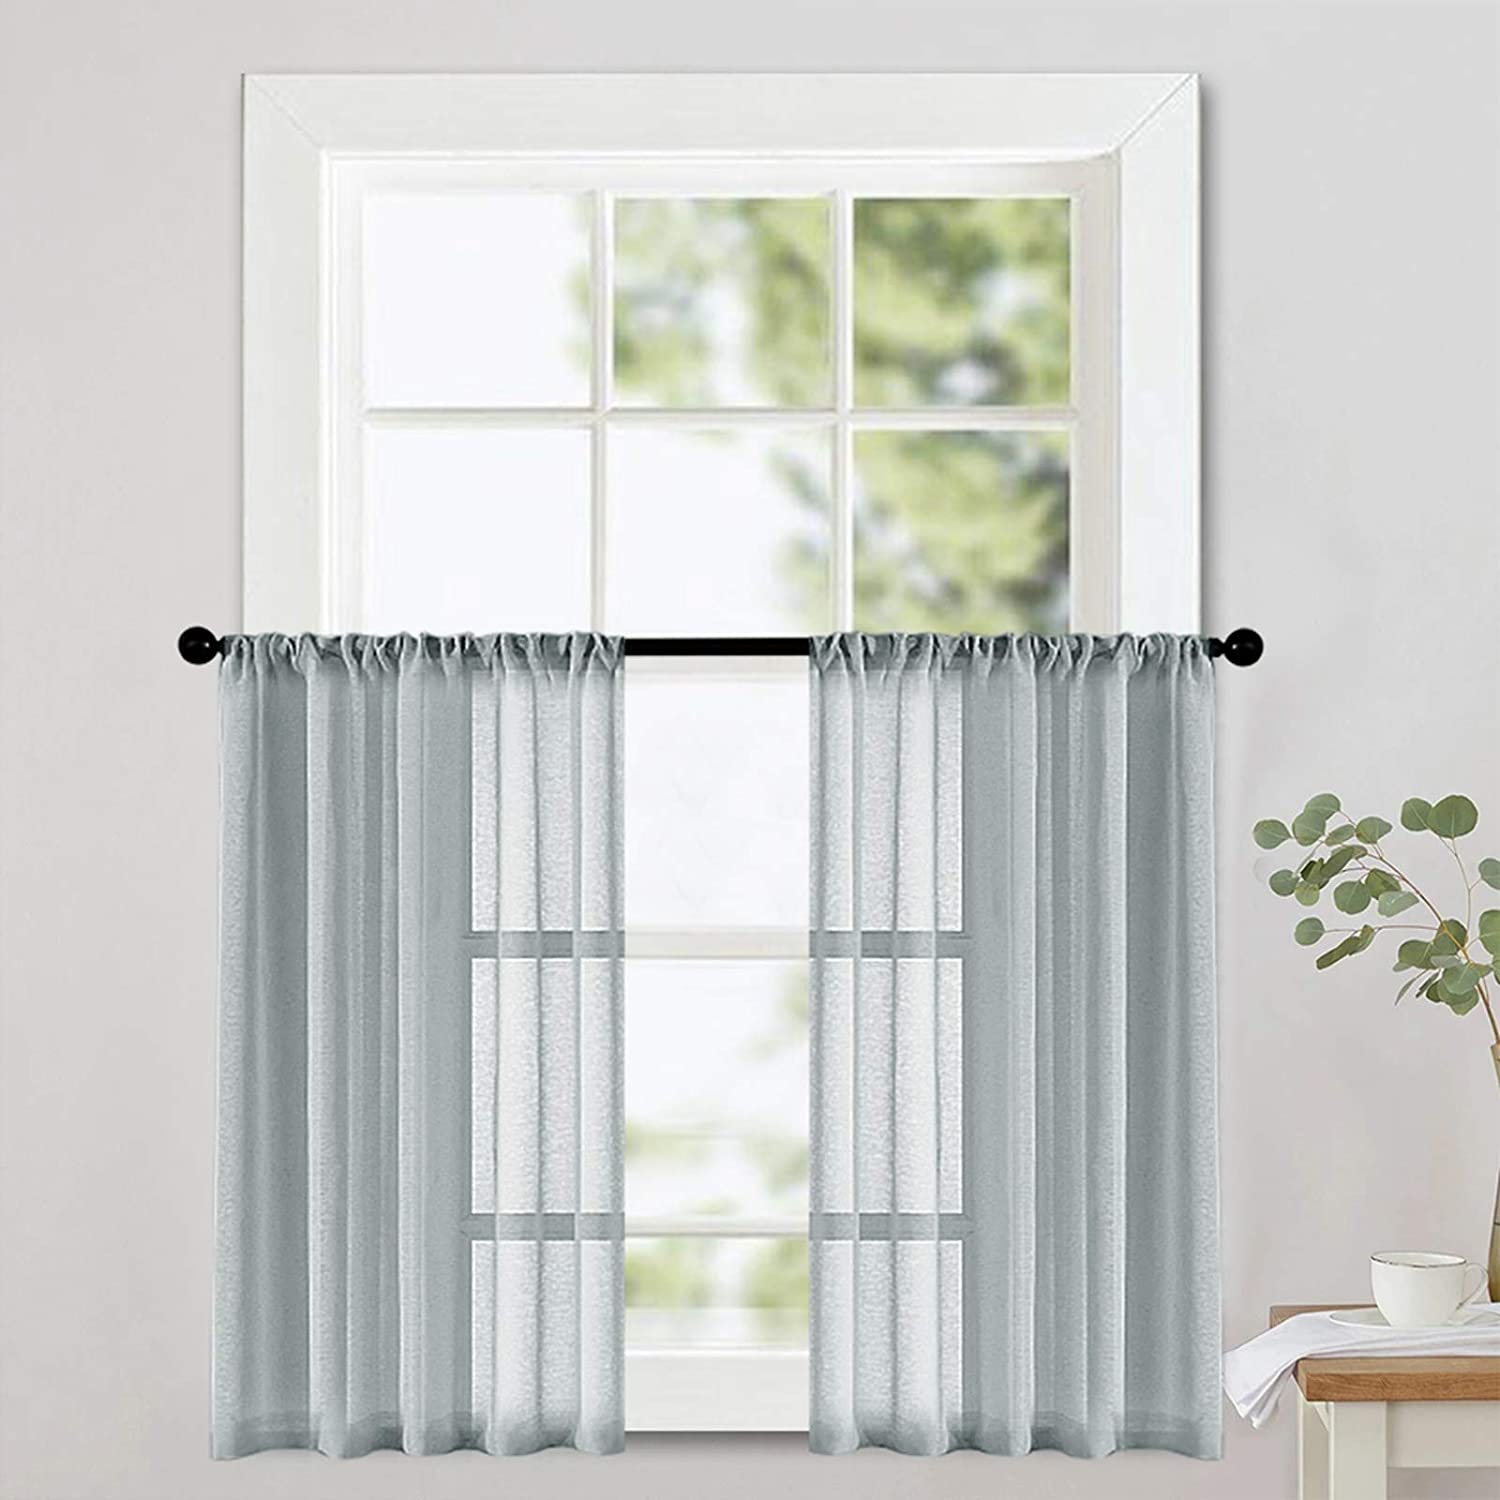 MRTREES Grey Sheer Tier Curtains Kitchen 12 inch Length Voile Half Window  Curtains Transparent Light Filtering Short Curtain Sheers Bathroom Rod ...